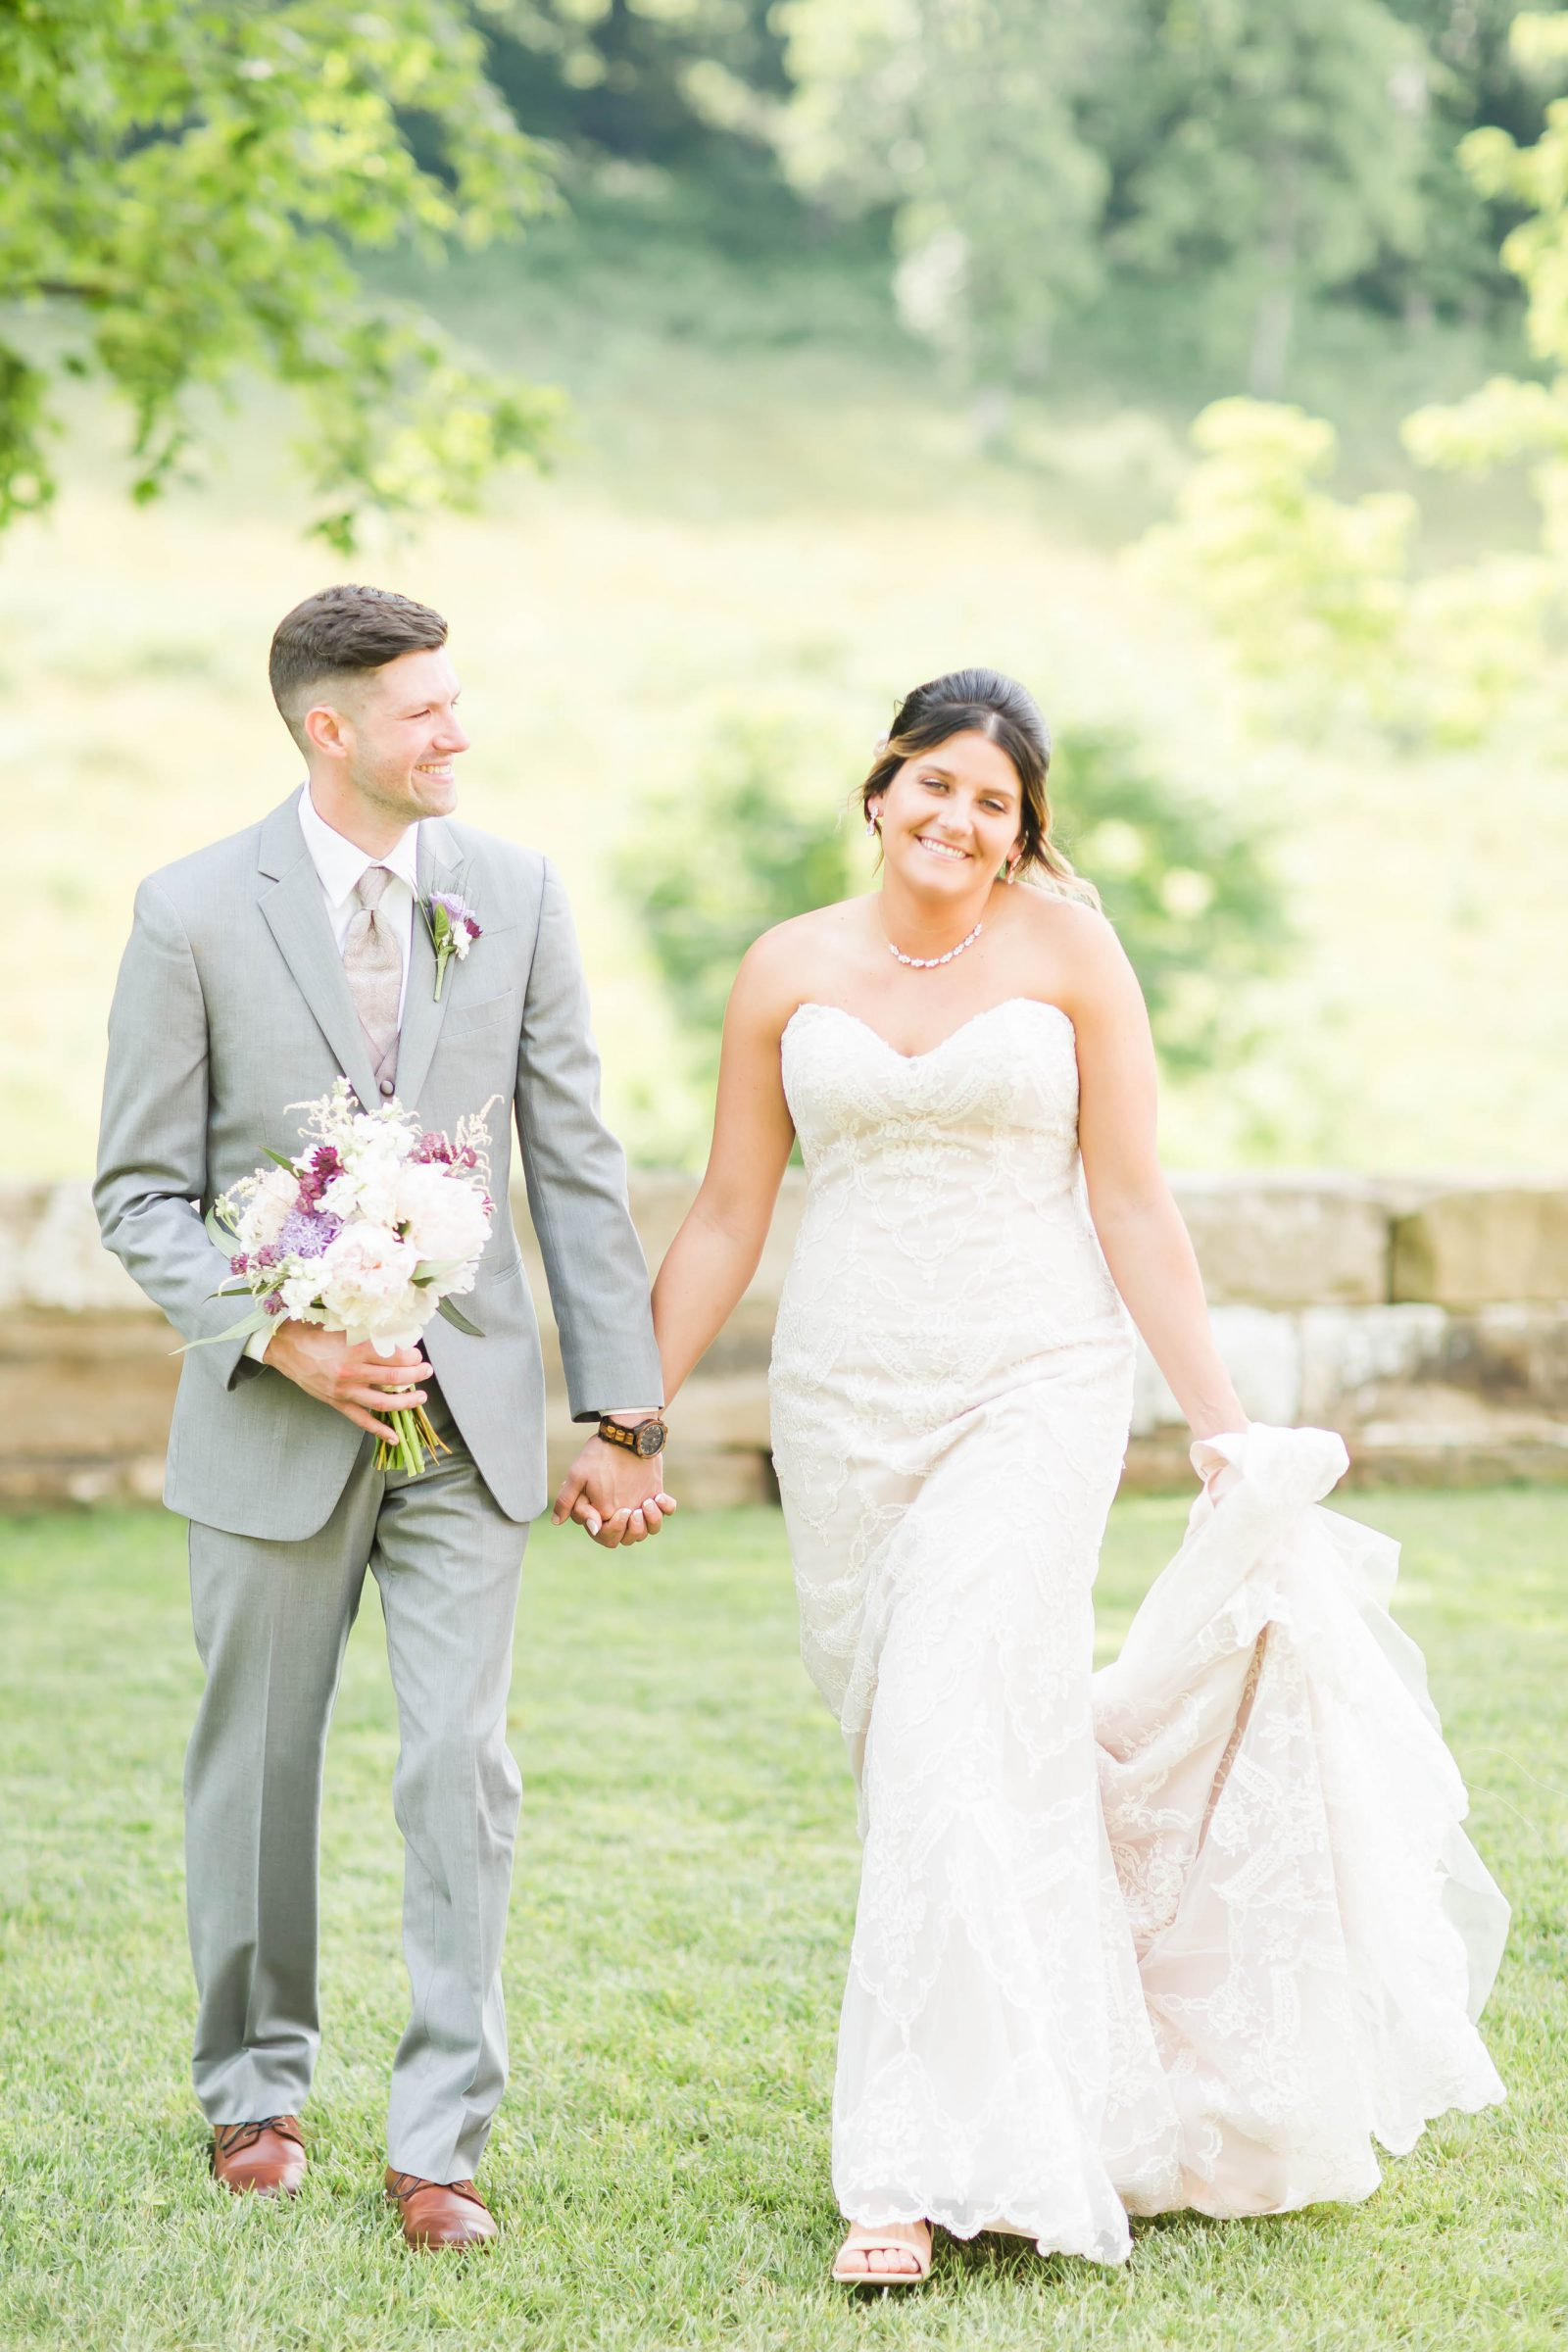 rivercrest-farm-summer-wedding-loren-jackson-photography-48